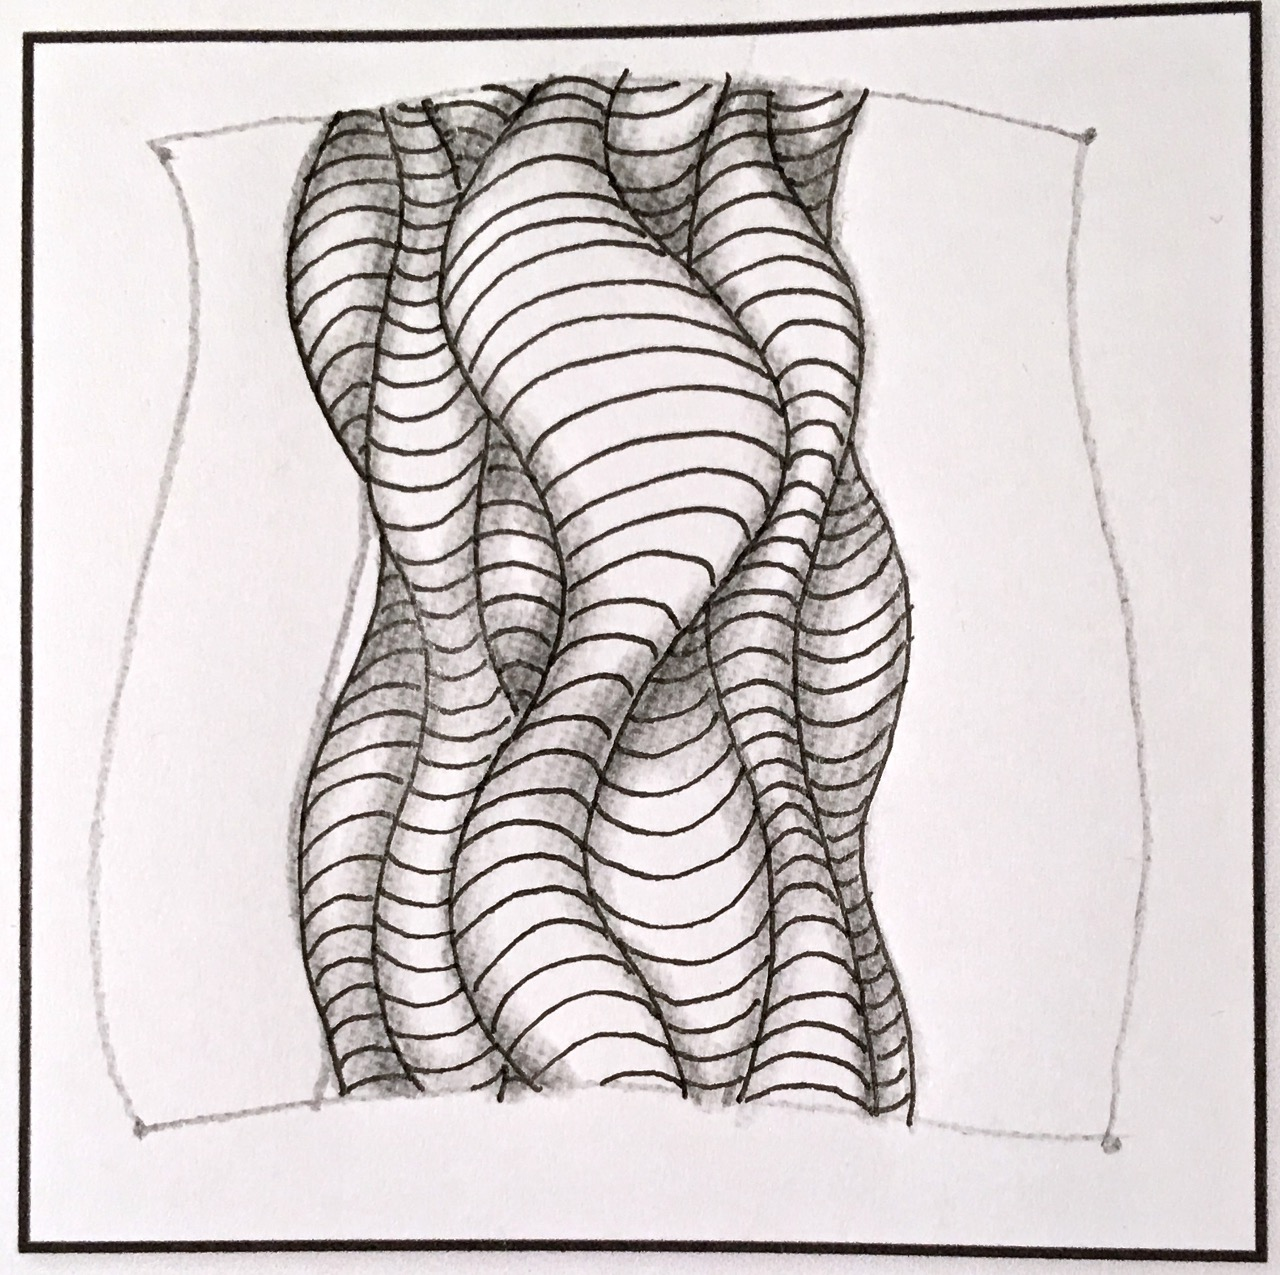 how to draw the zentangle pattern cuddles with shading and a